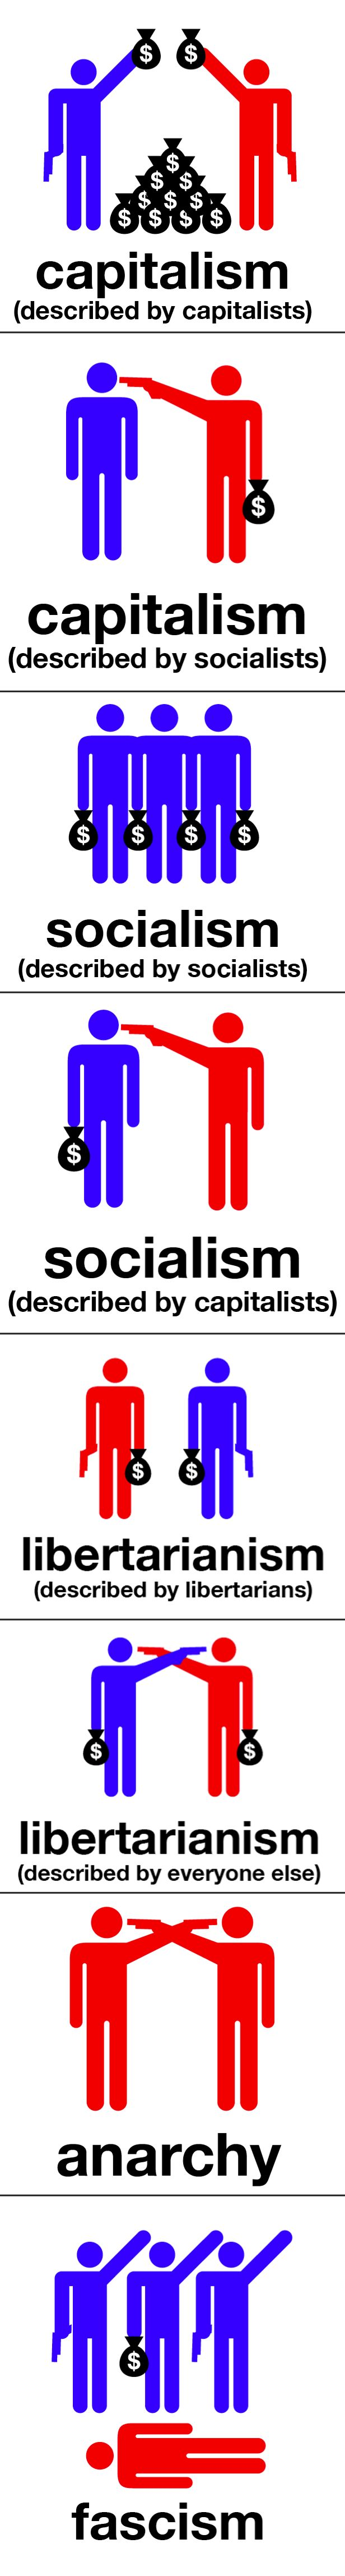 Capitalism, Socialism, Libertarianism, Anarchy and Fascism explained (8 pics)